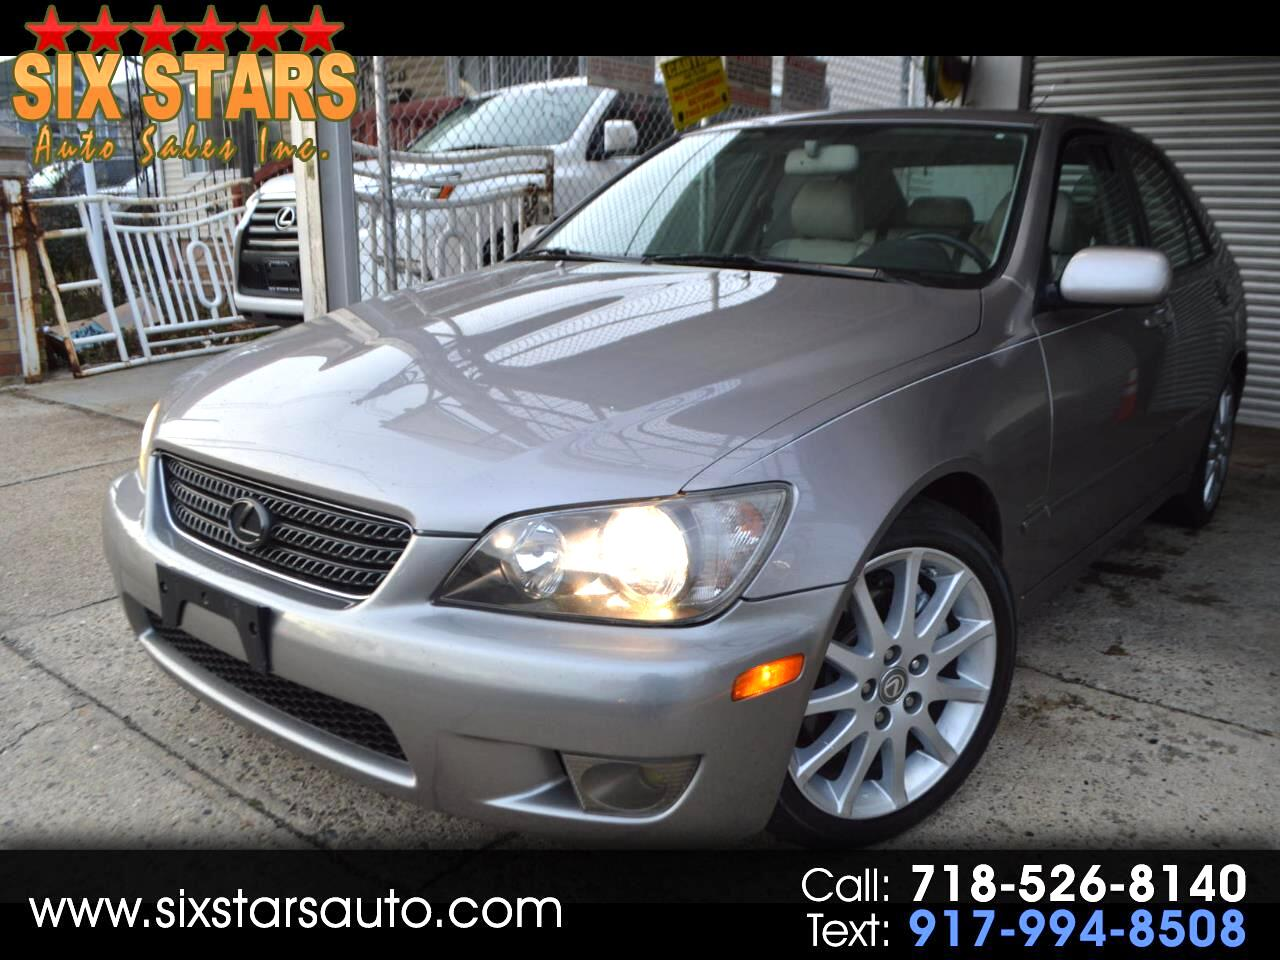 Lexus IS 300 4dr Sdn 2004